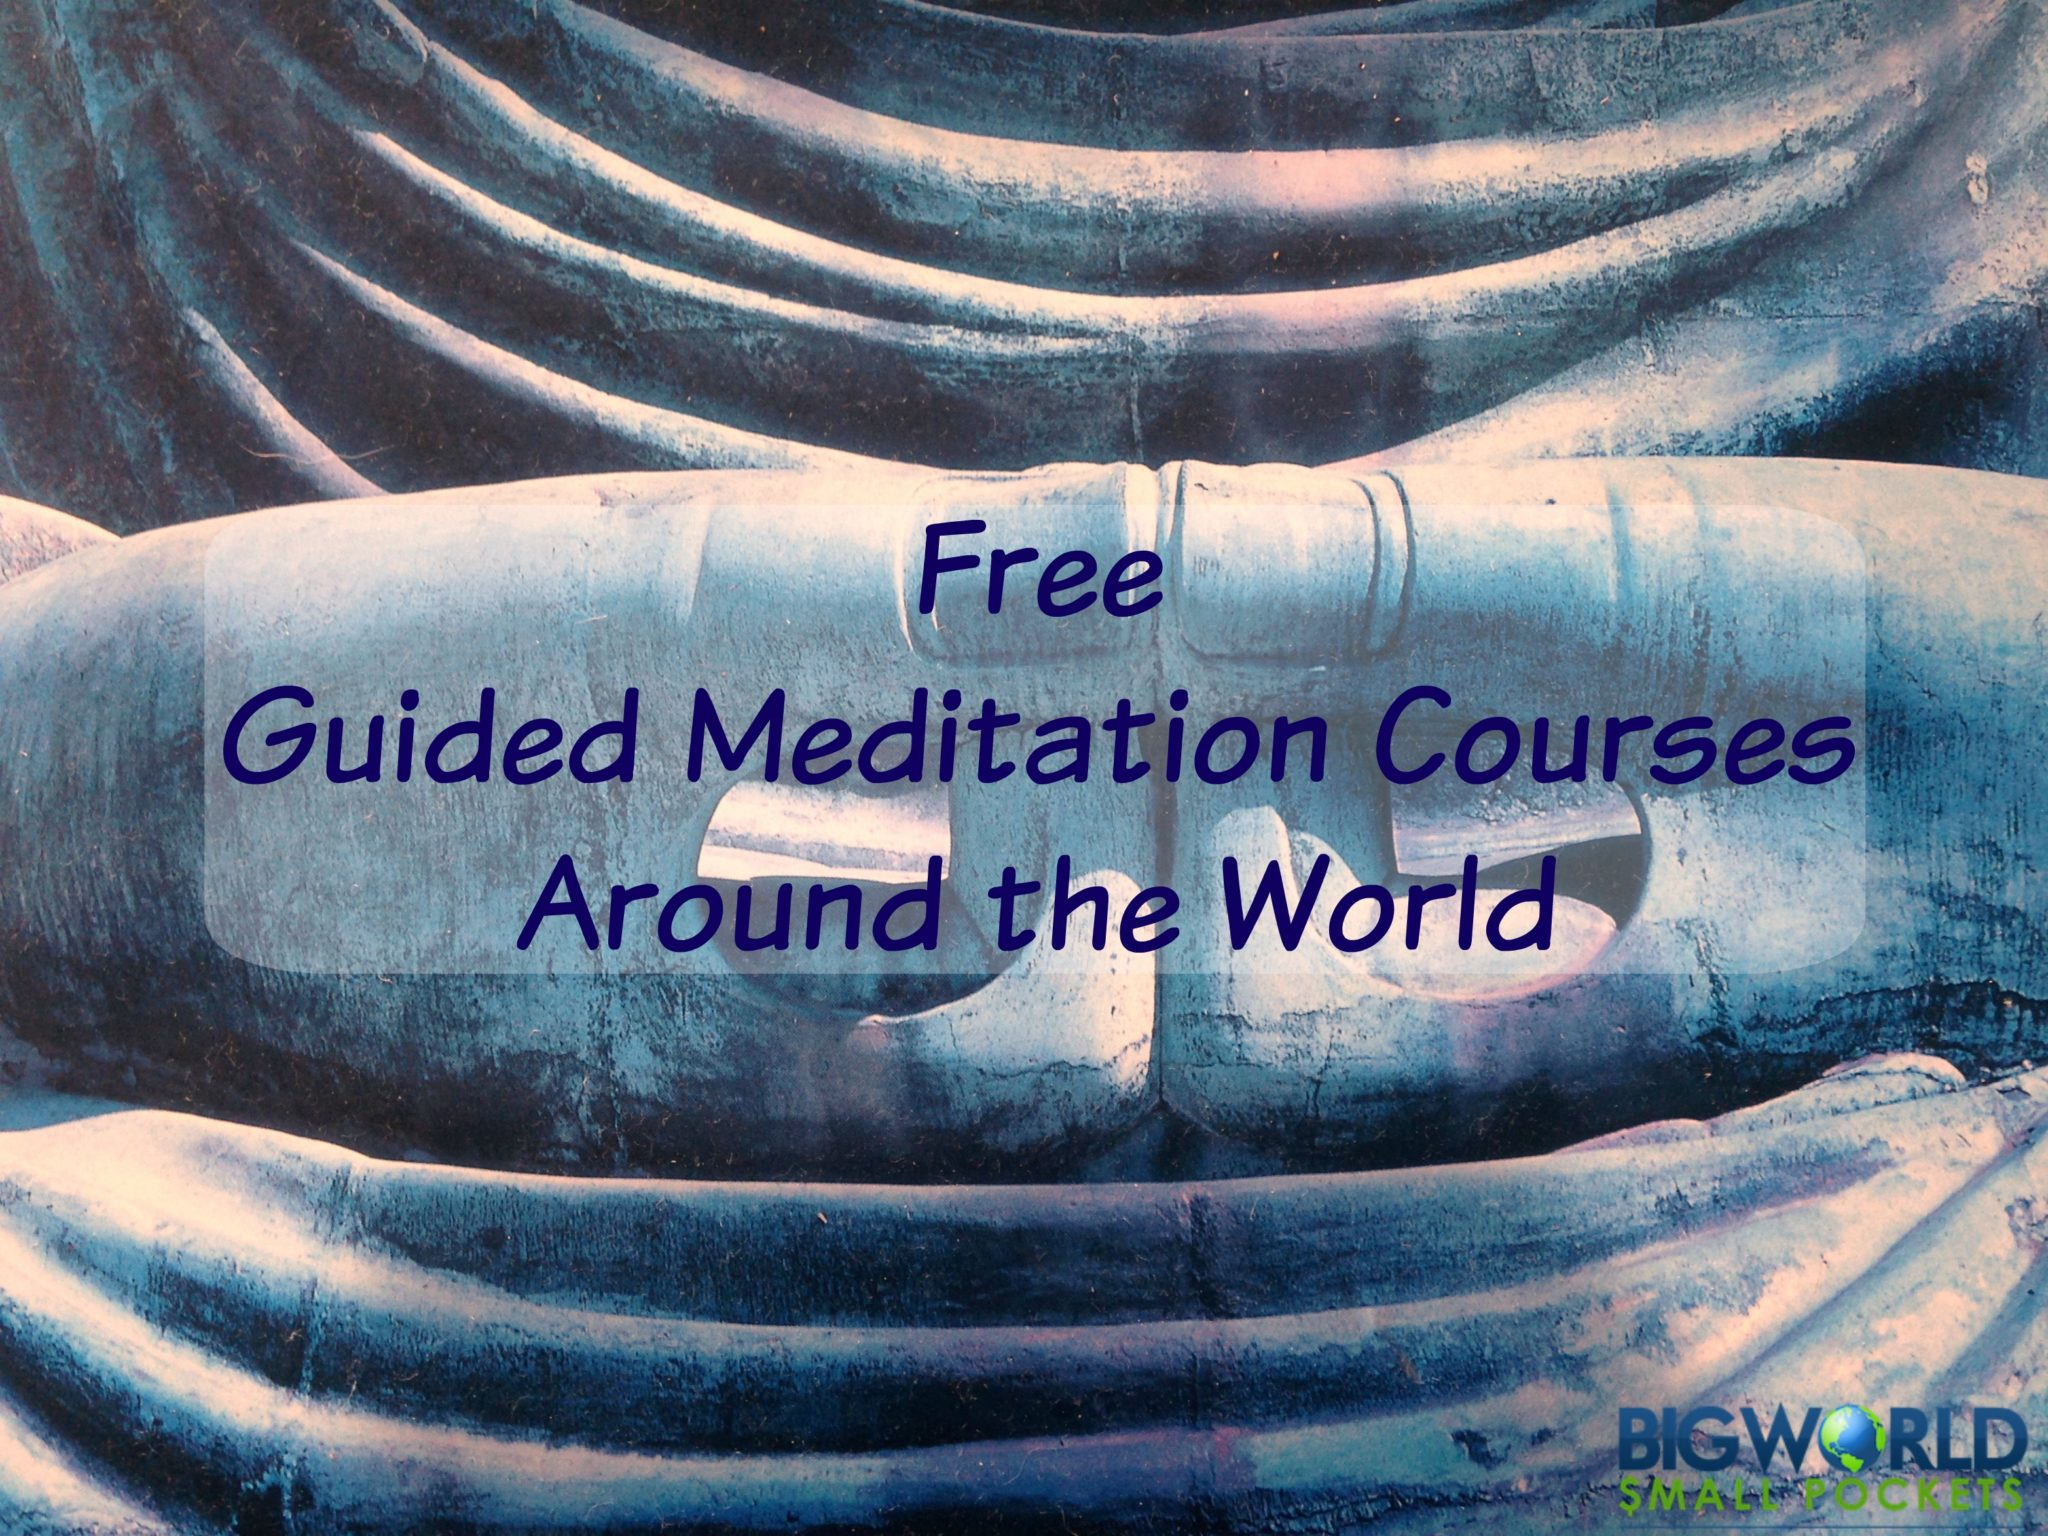 Free Guided Meditation Courses Around the World